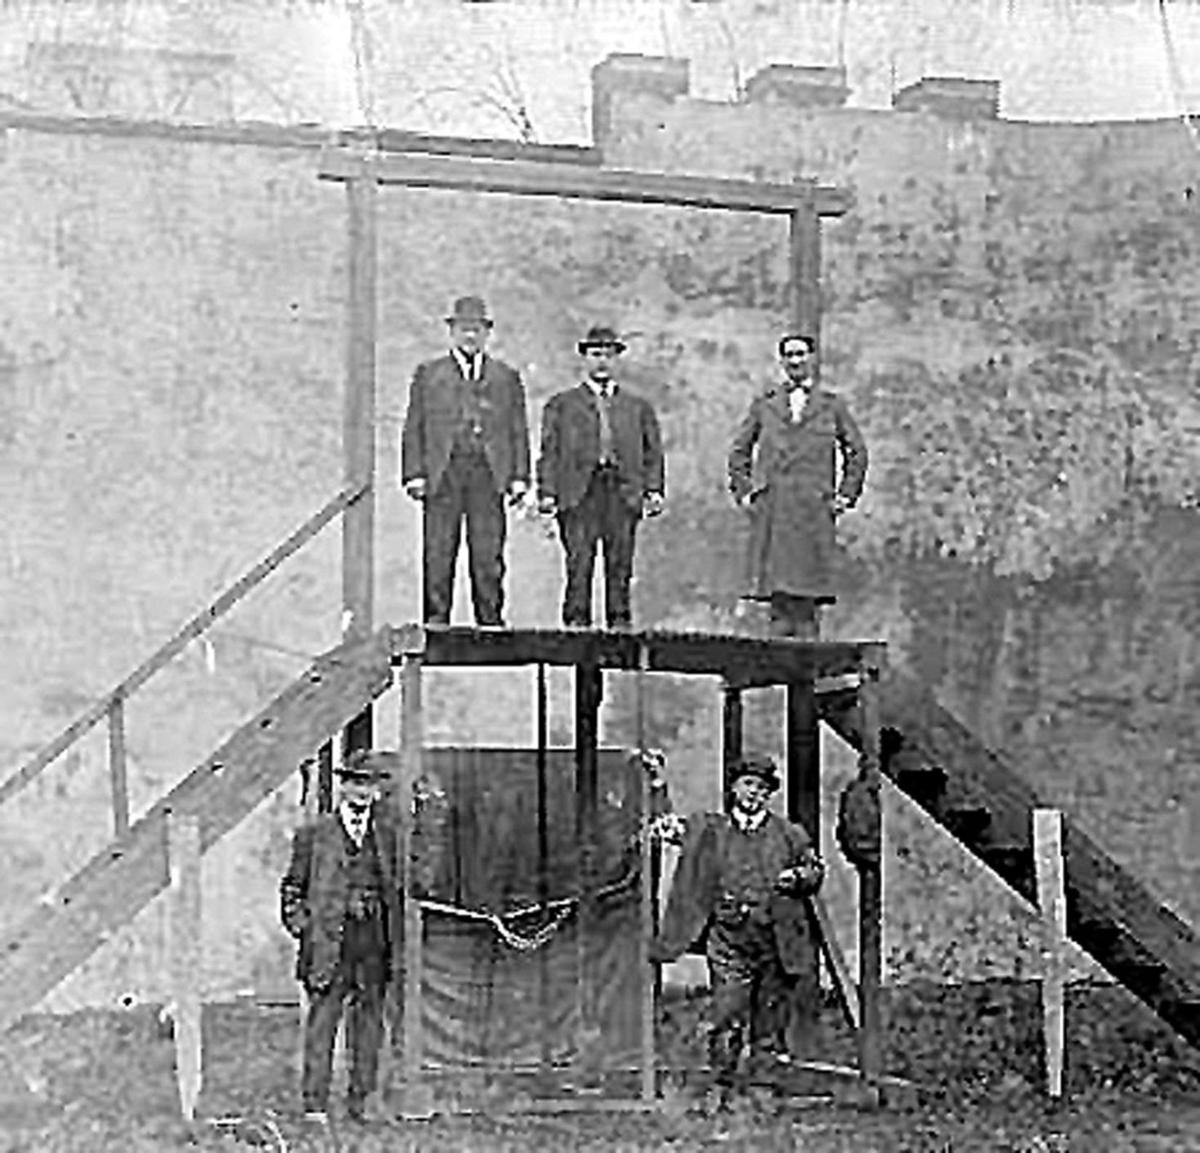 prison future left hanging razing historic structure a site of last hanging in pennsylvania